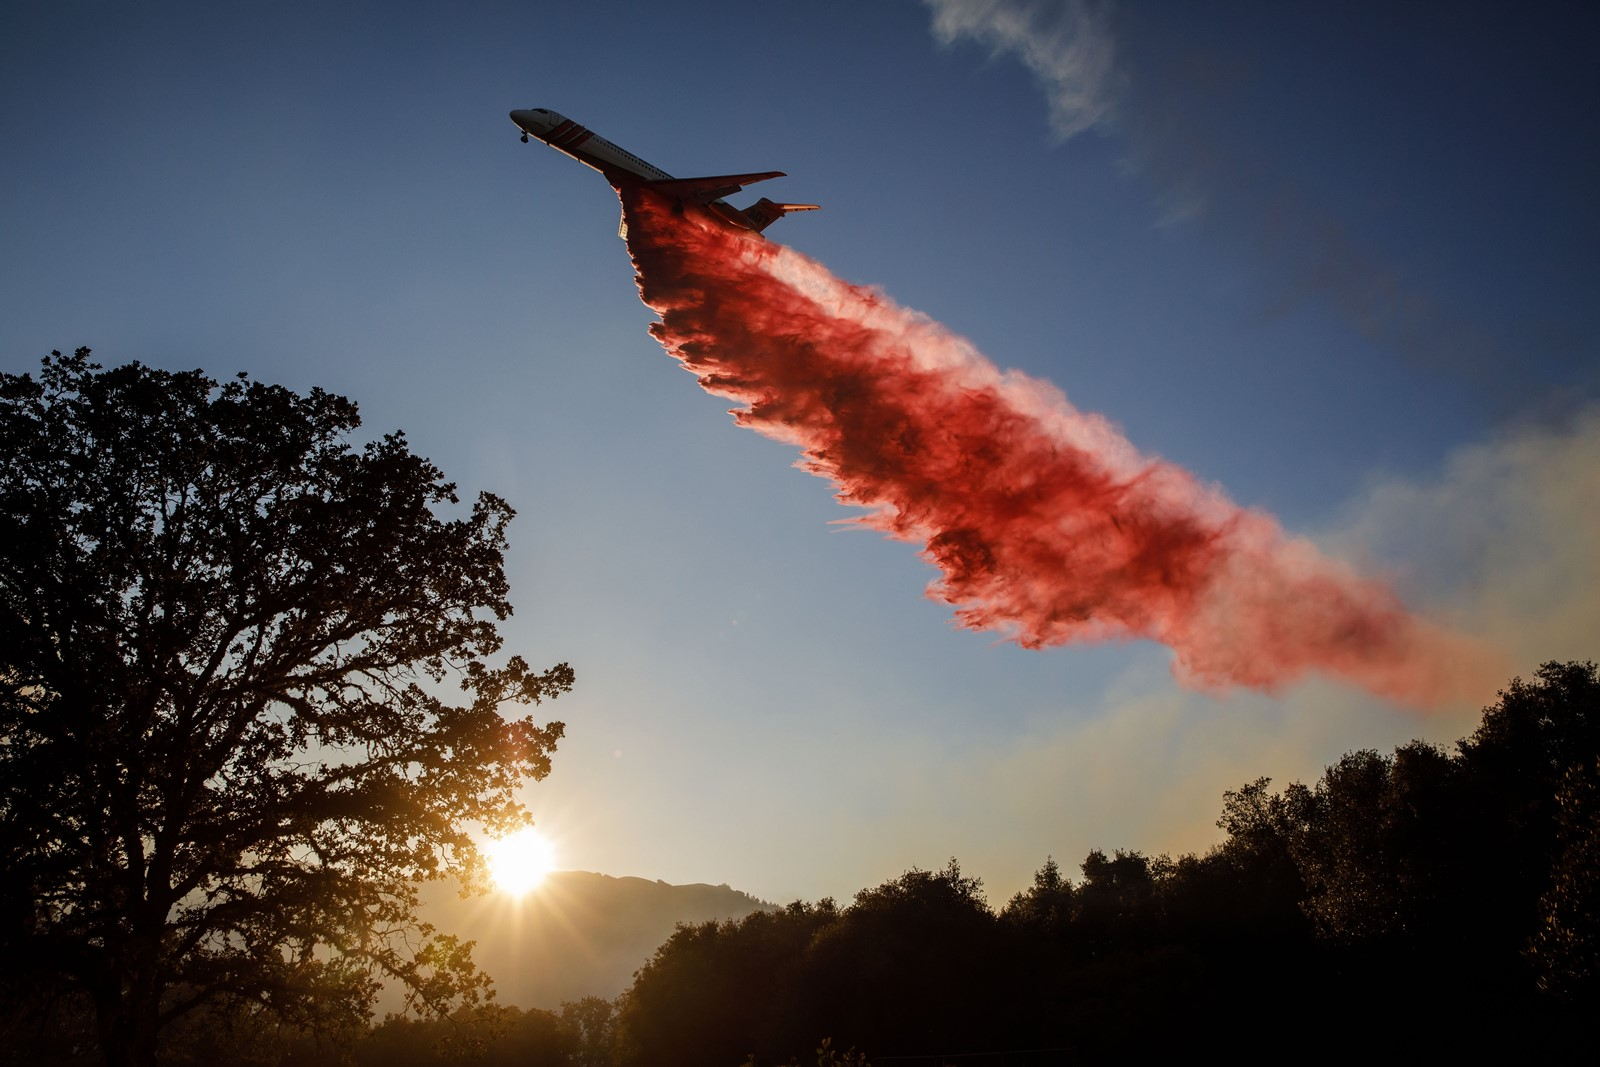 An air tanker drops fire retardant ahead of the River fire in Mendocino County, California on Wednesday. — Photograph: Marcus Yam/Los Angeles Times.